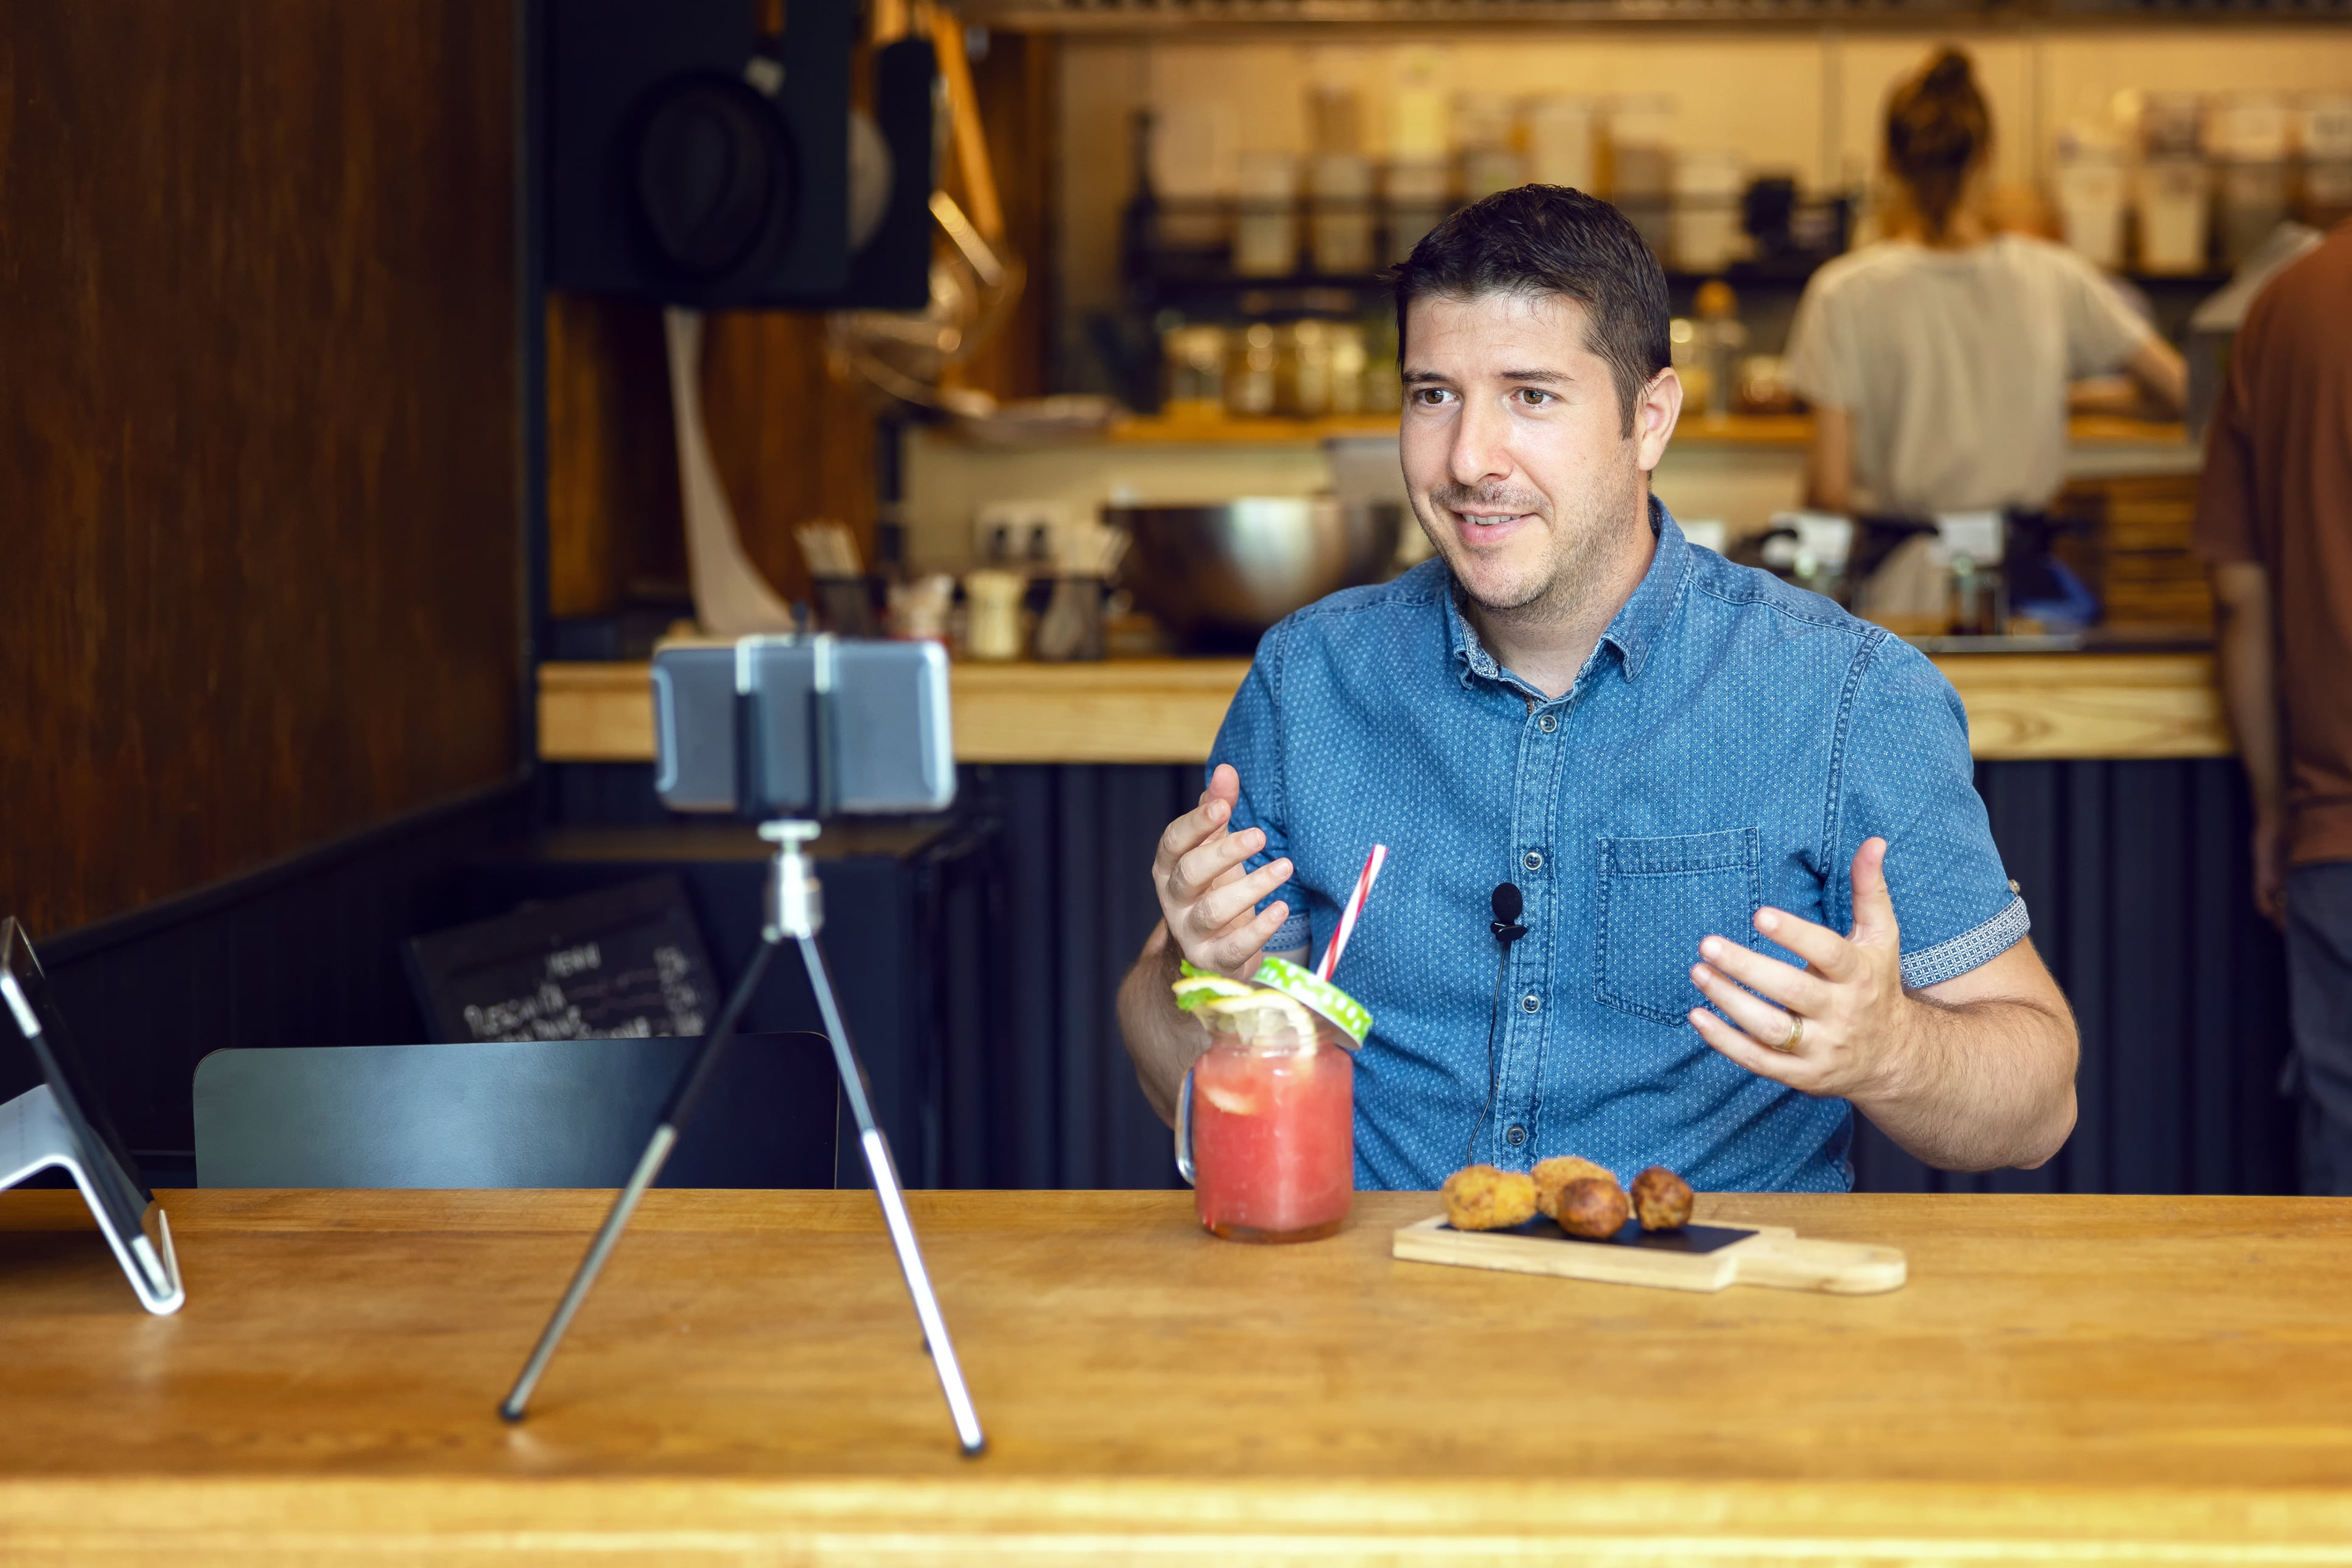 Man sitting at wooden table speaking into phone on a tripod and eating donuts.